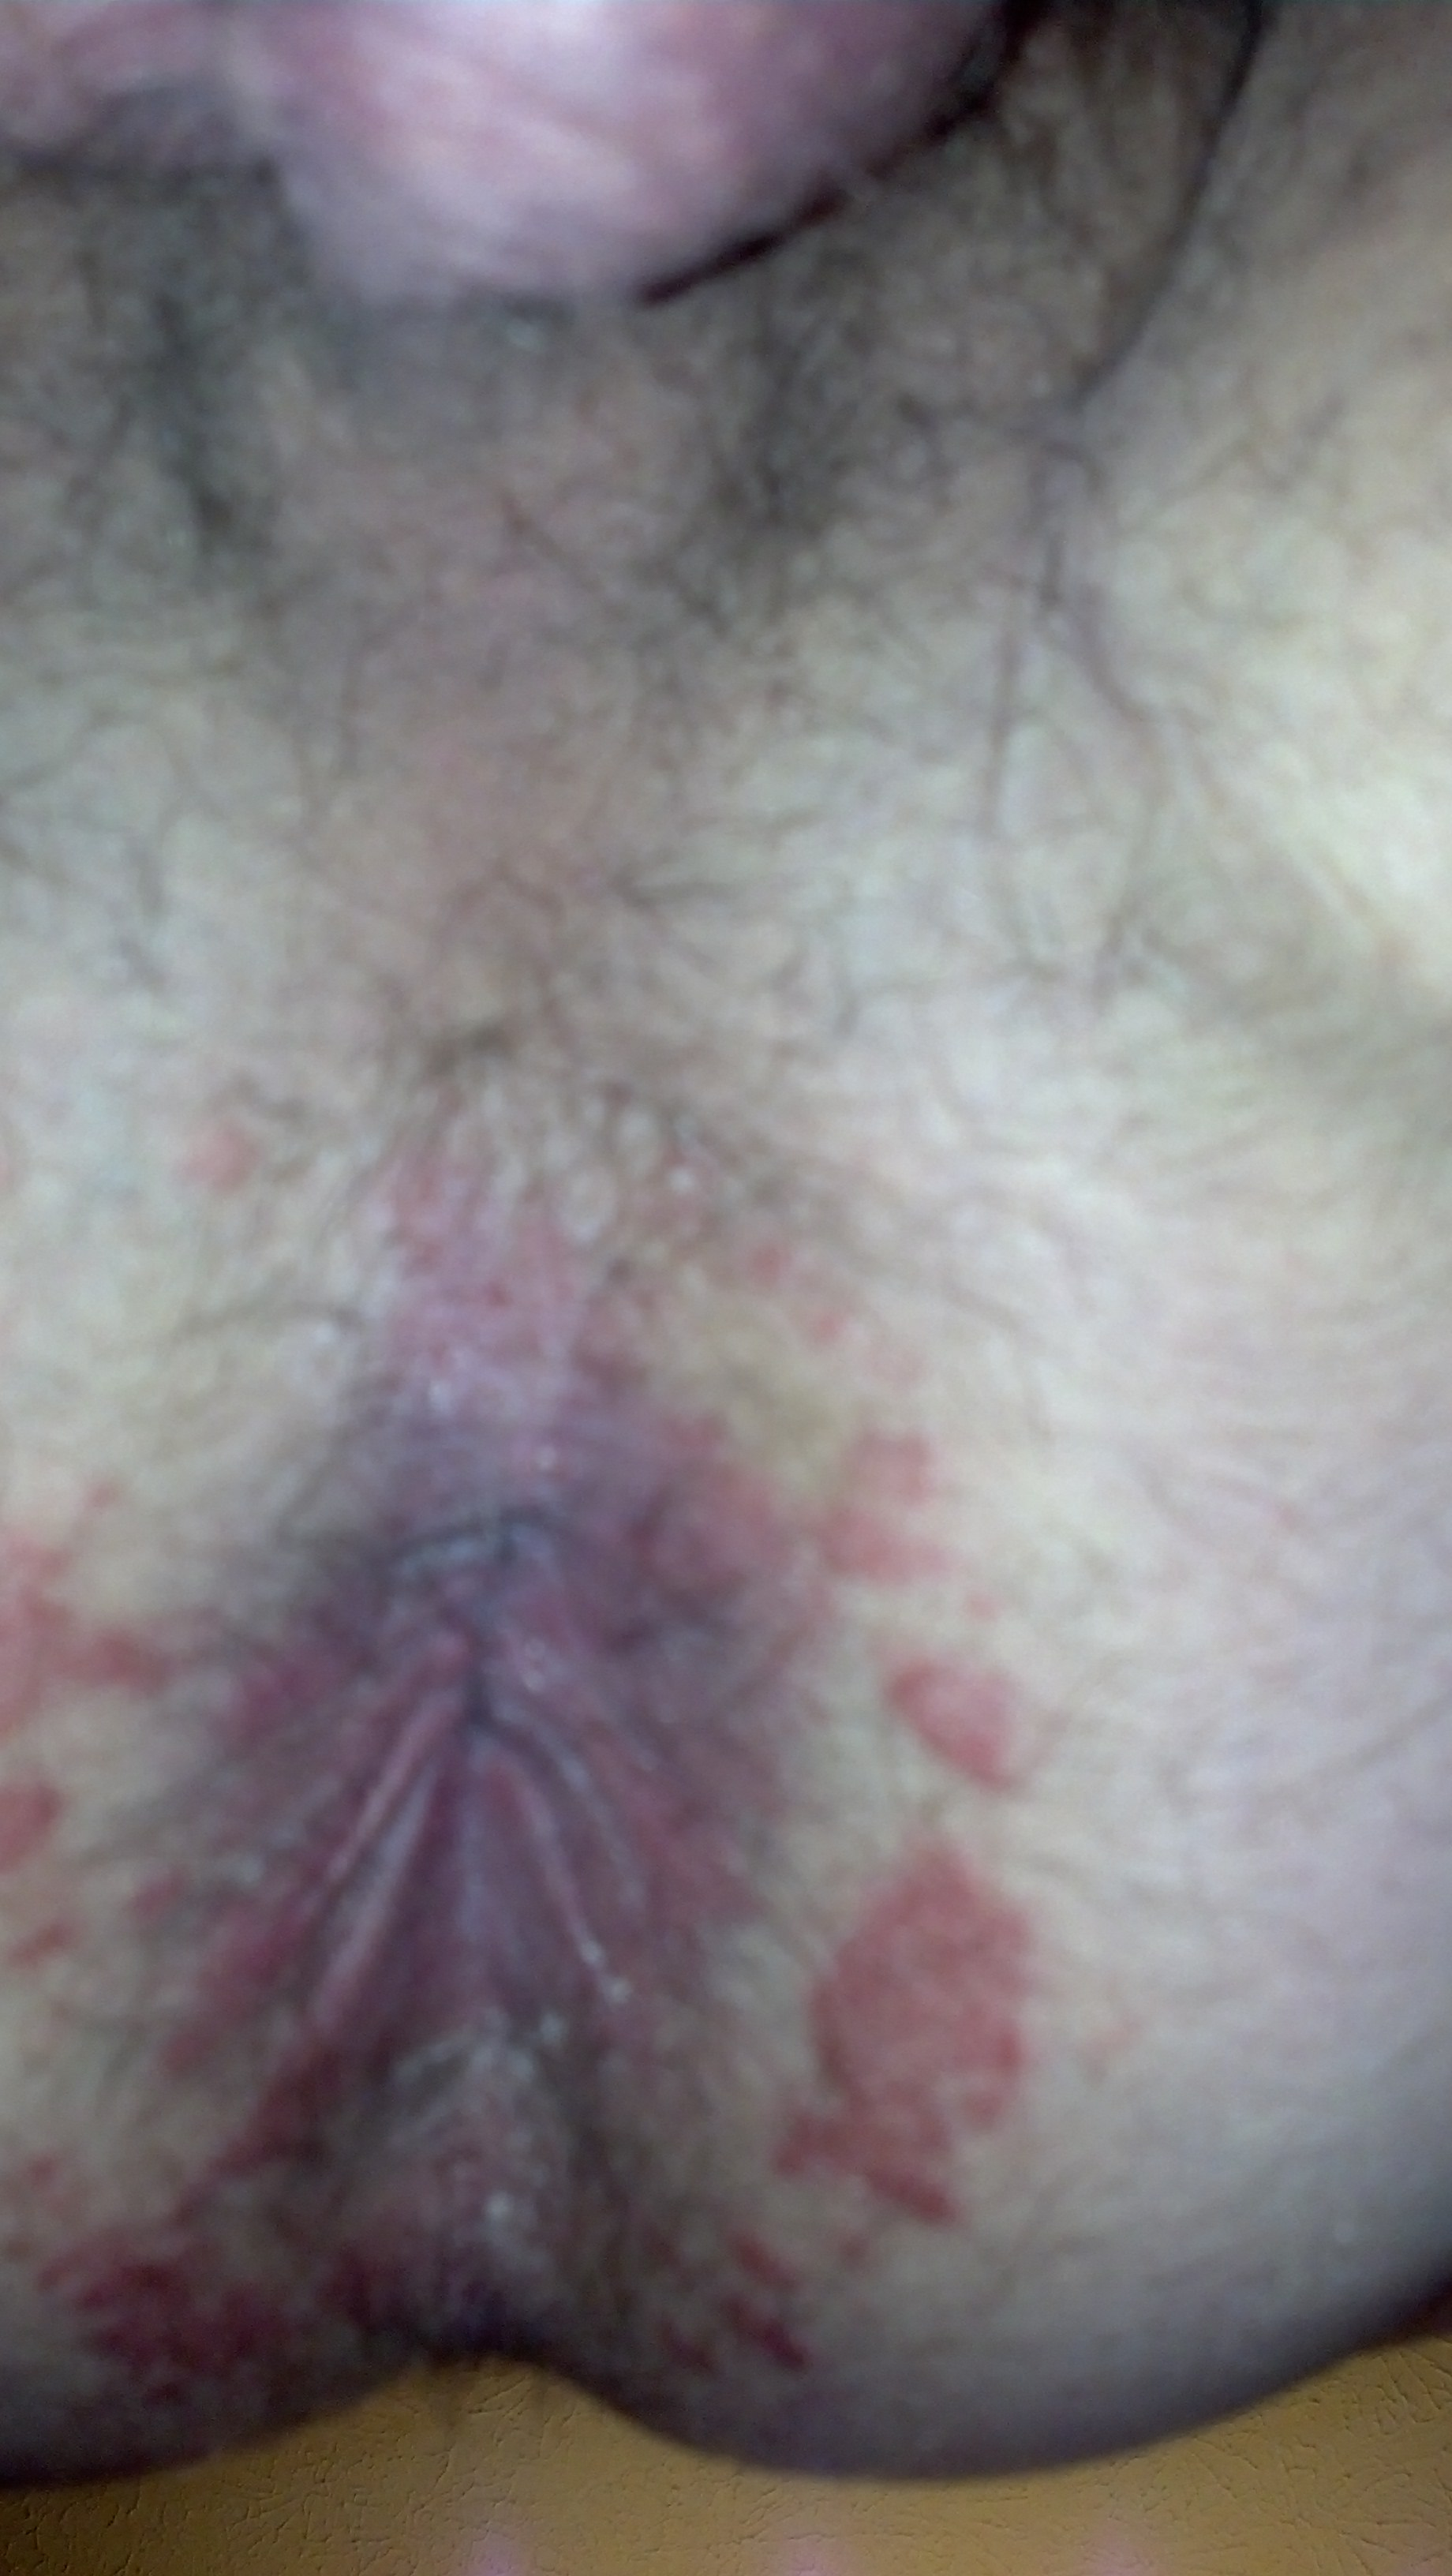 redness around the area of anus jpg 1500x1000